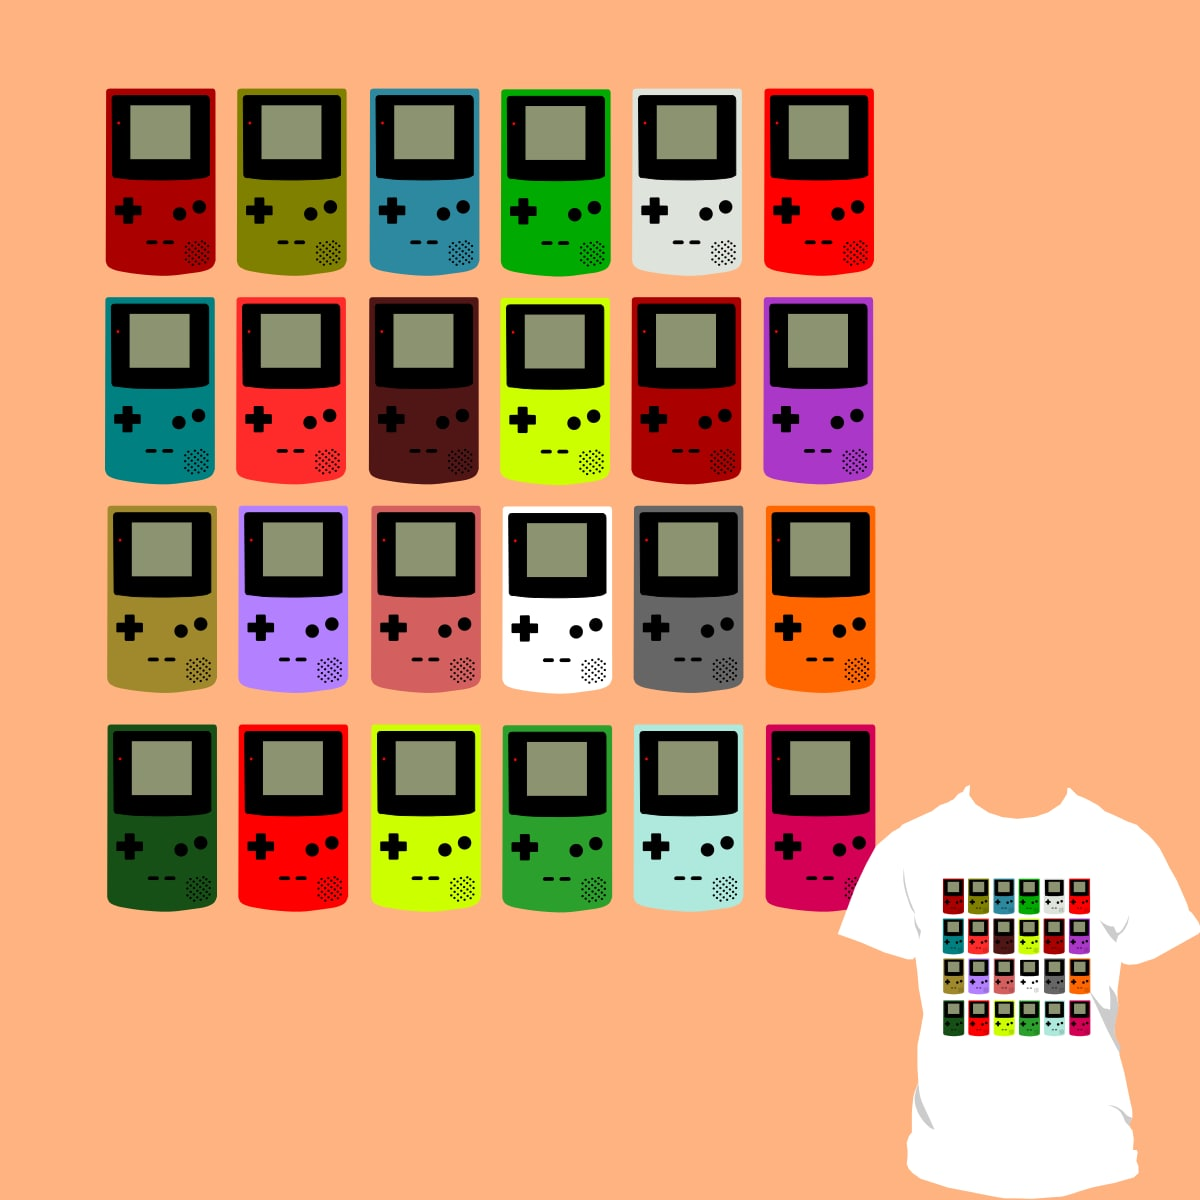 Game boy colore show by DizesVictor on Threadless